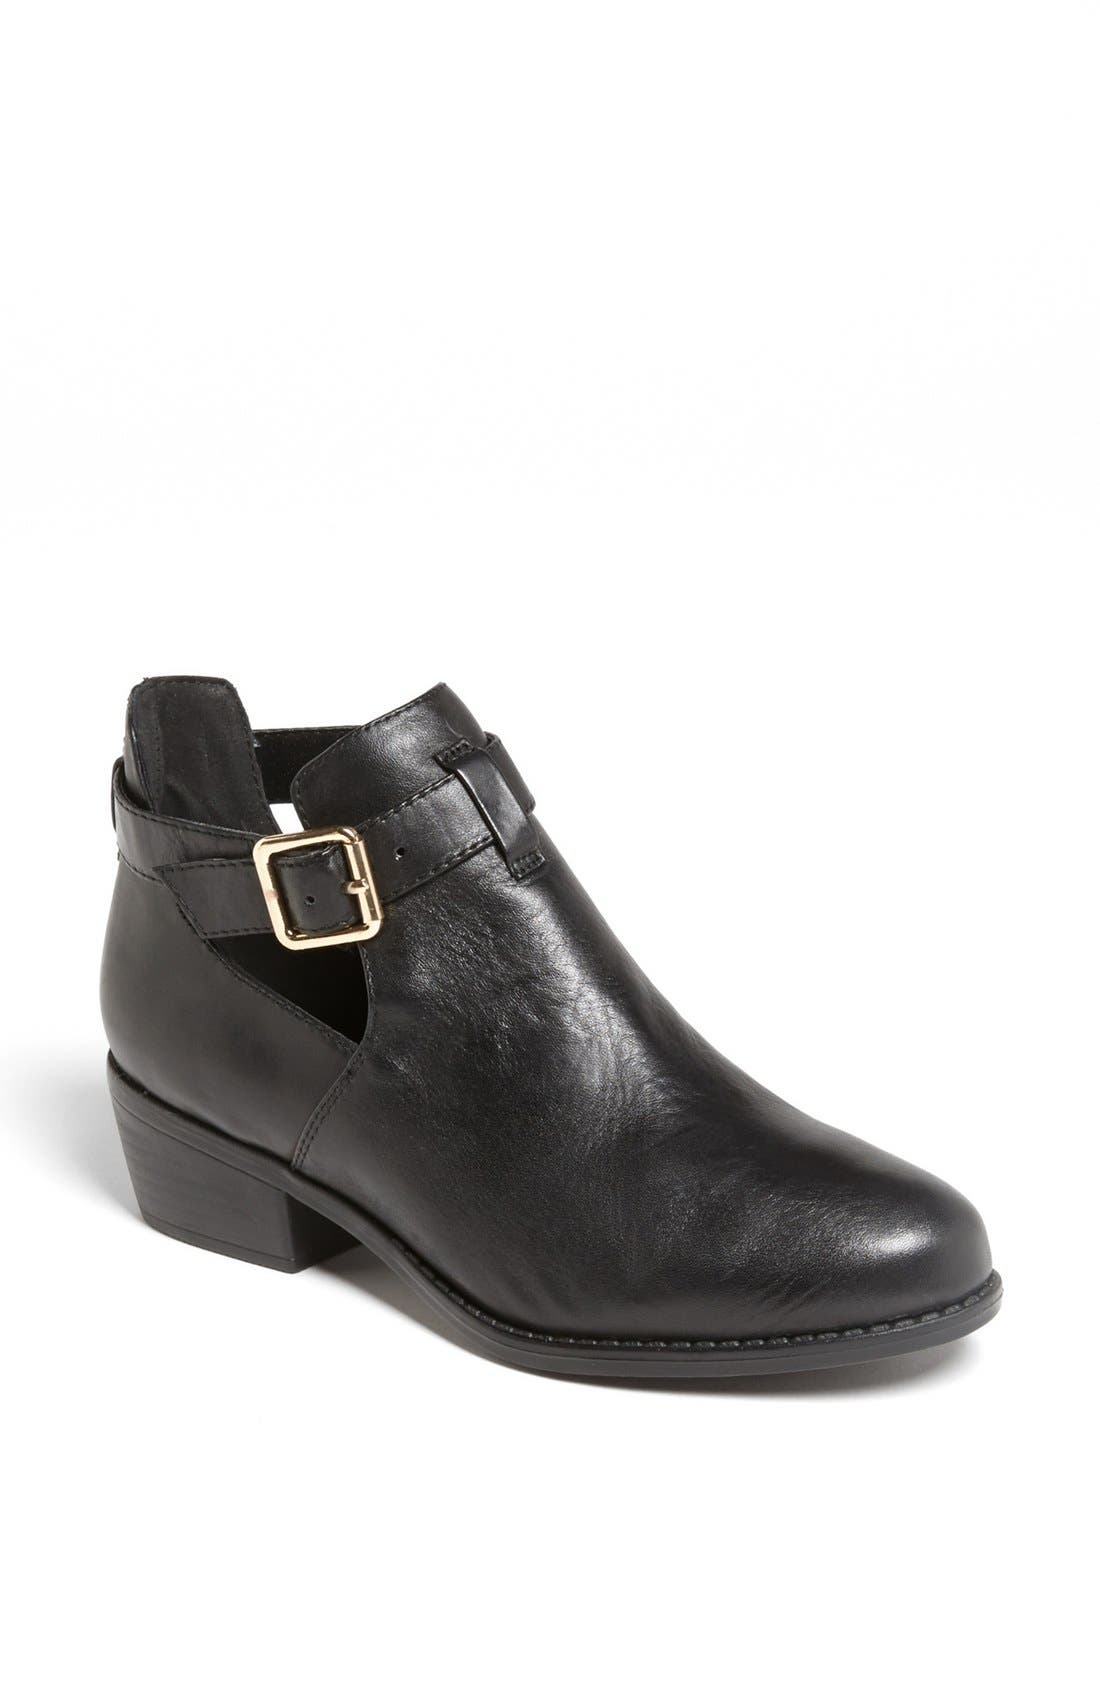 Alternate Image 1 Selected - Topshop 'Monti' Boot